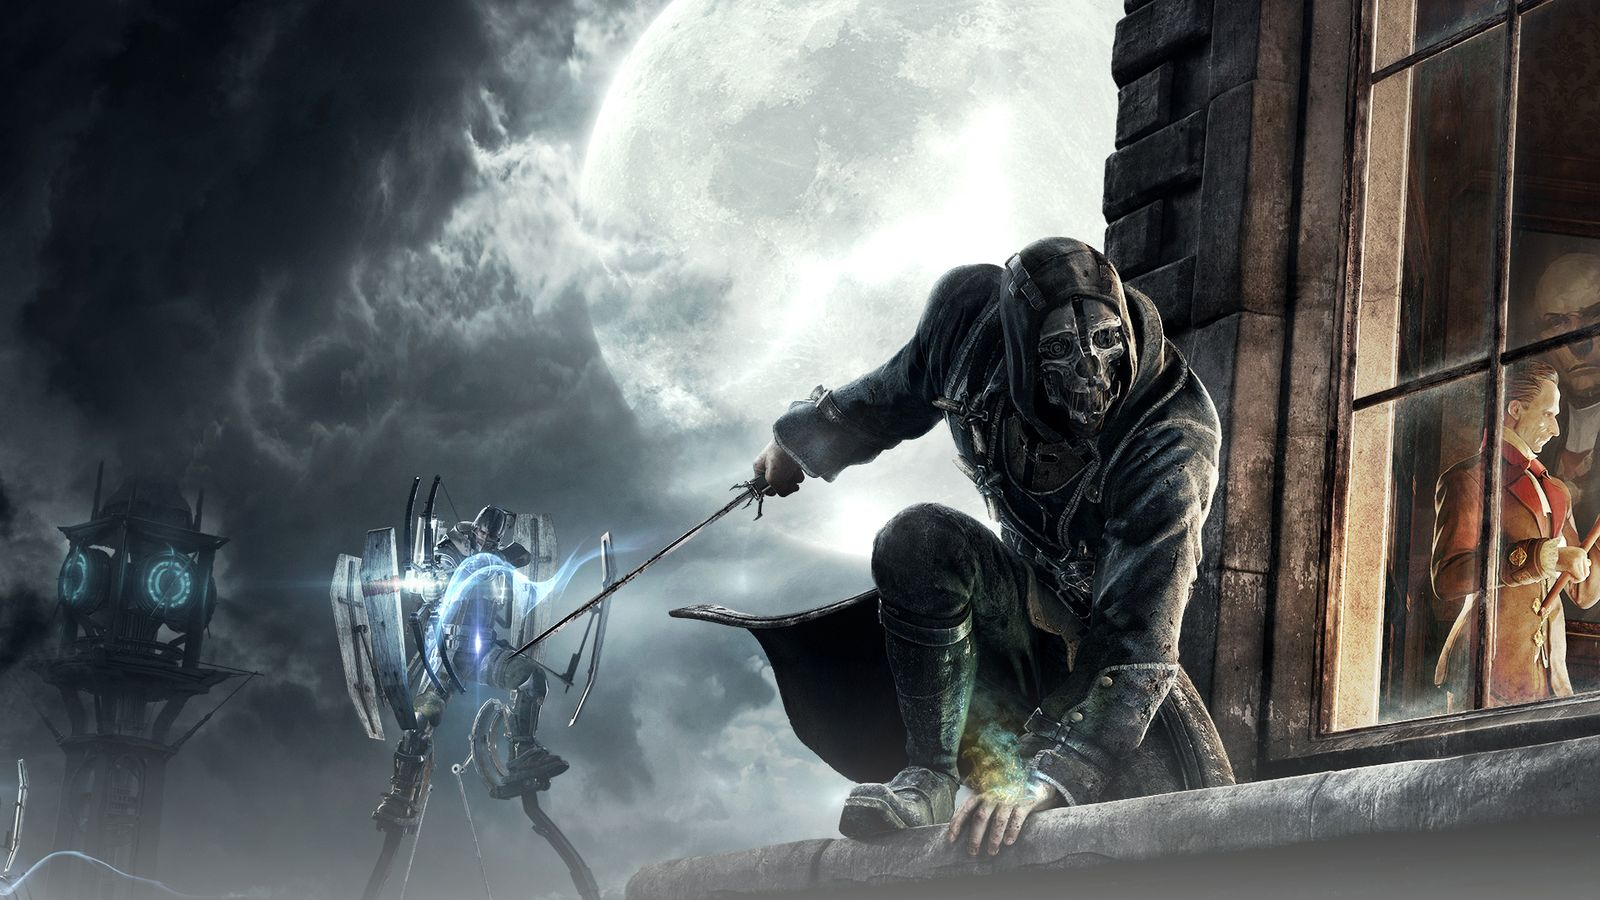 dishonored images corvo hd wallpaper and background photos (39975888)